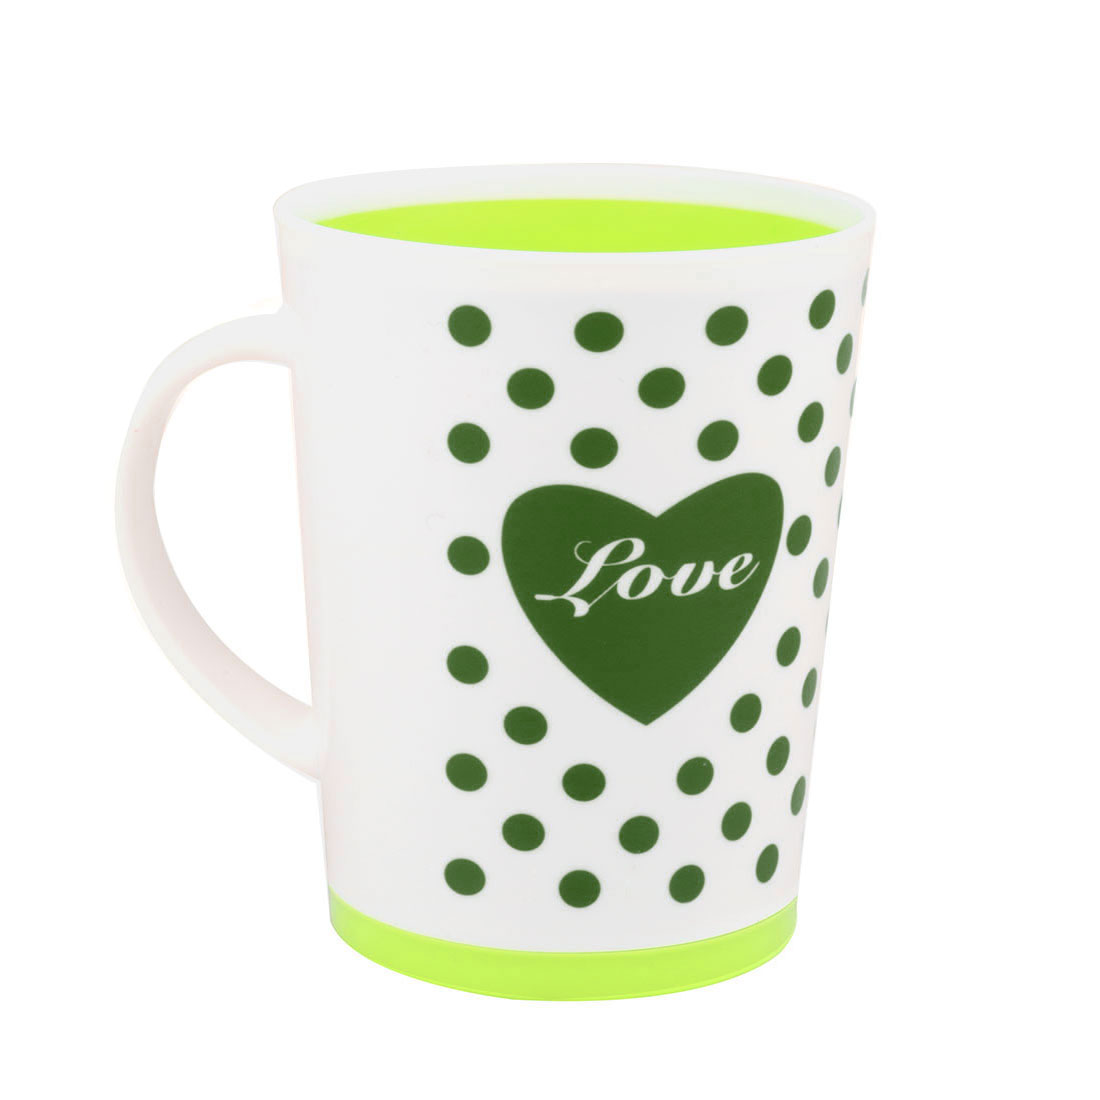 Home Hotel Plastic Heart Dot Pattern Water Bottle Gargle Brushing Cup Toothbrush Holder Light Green